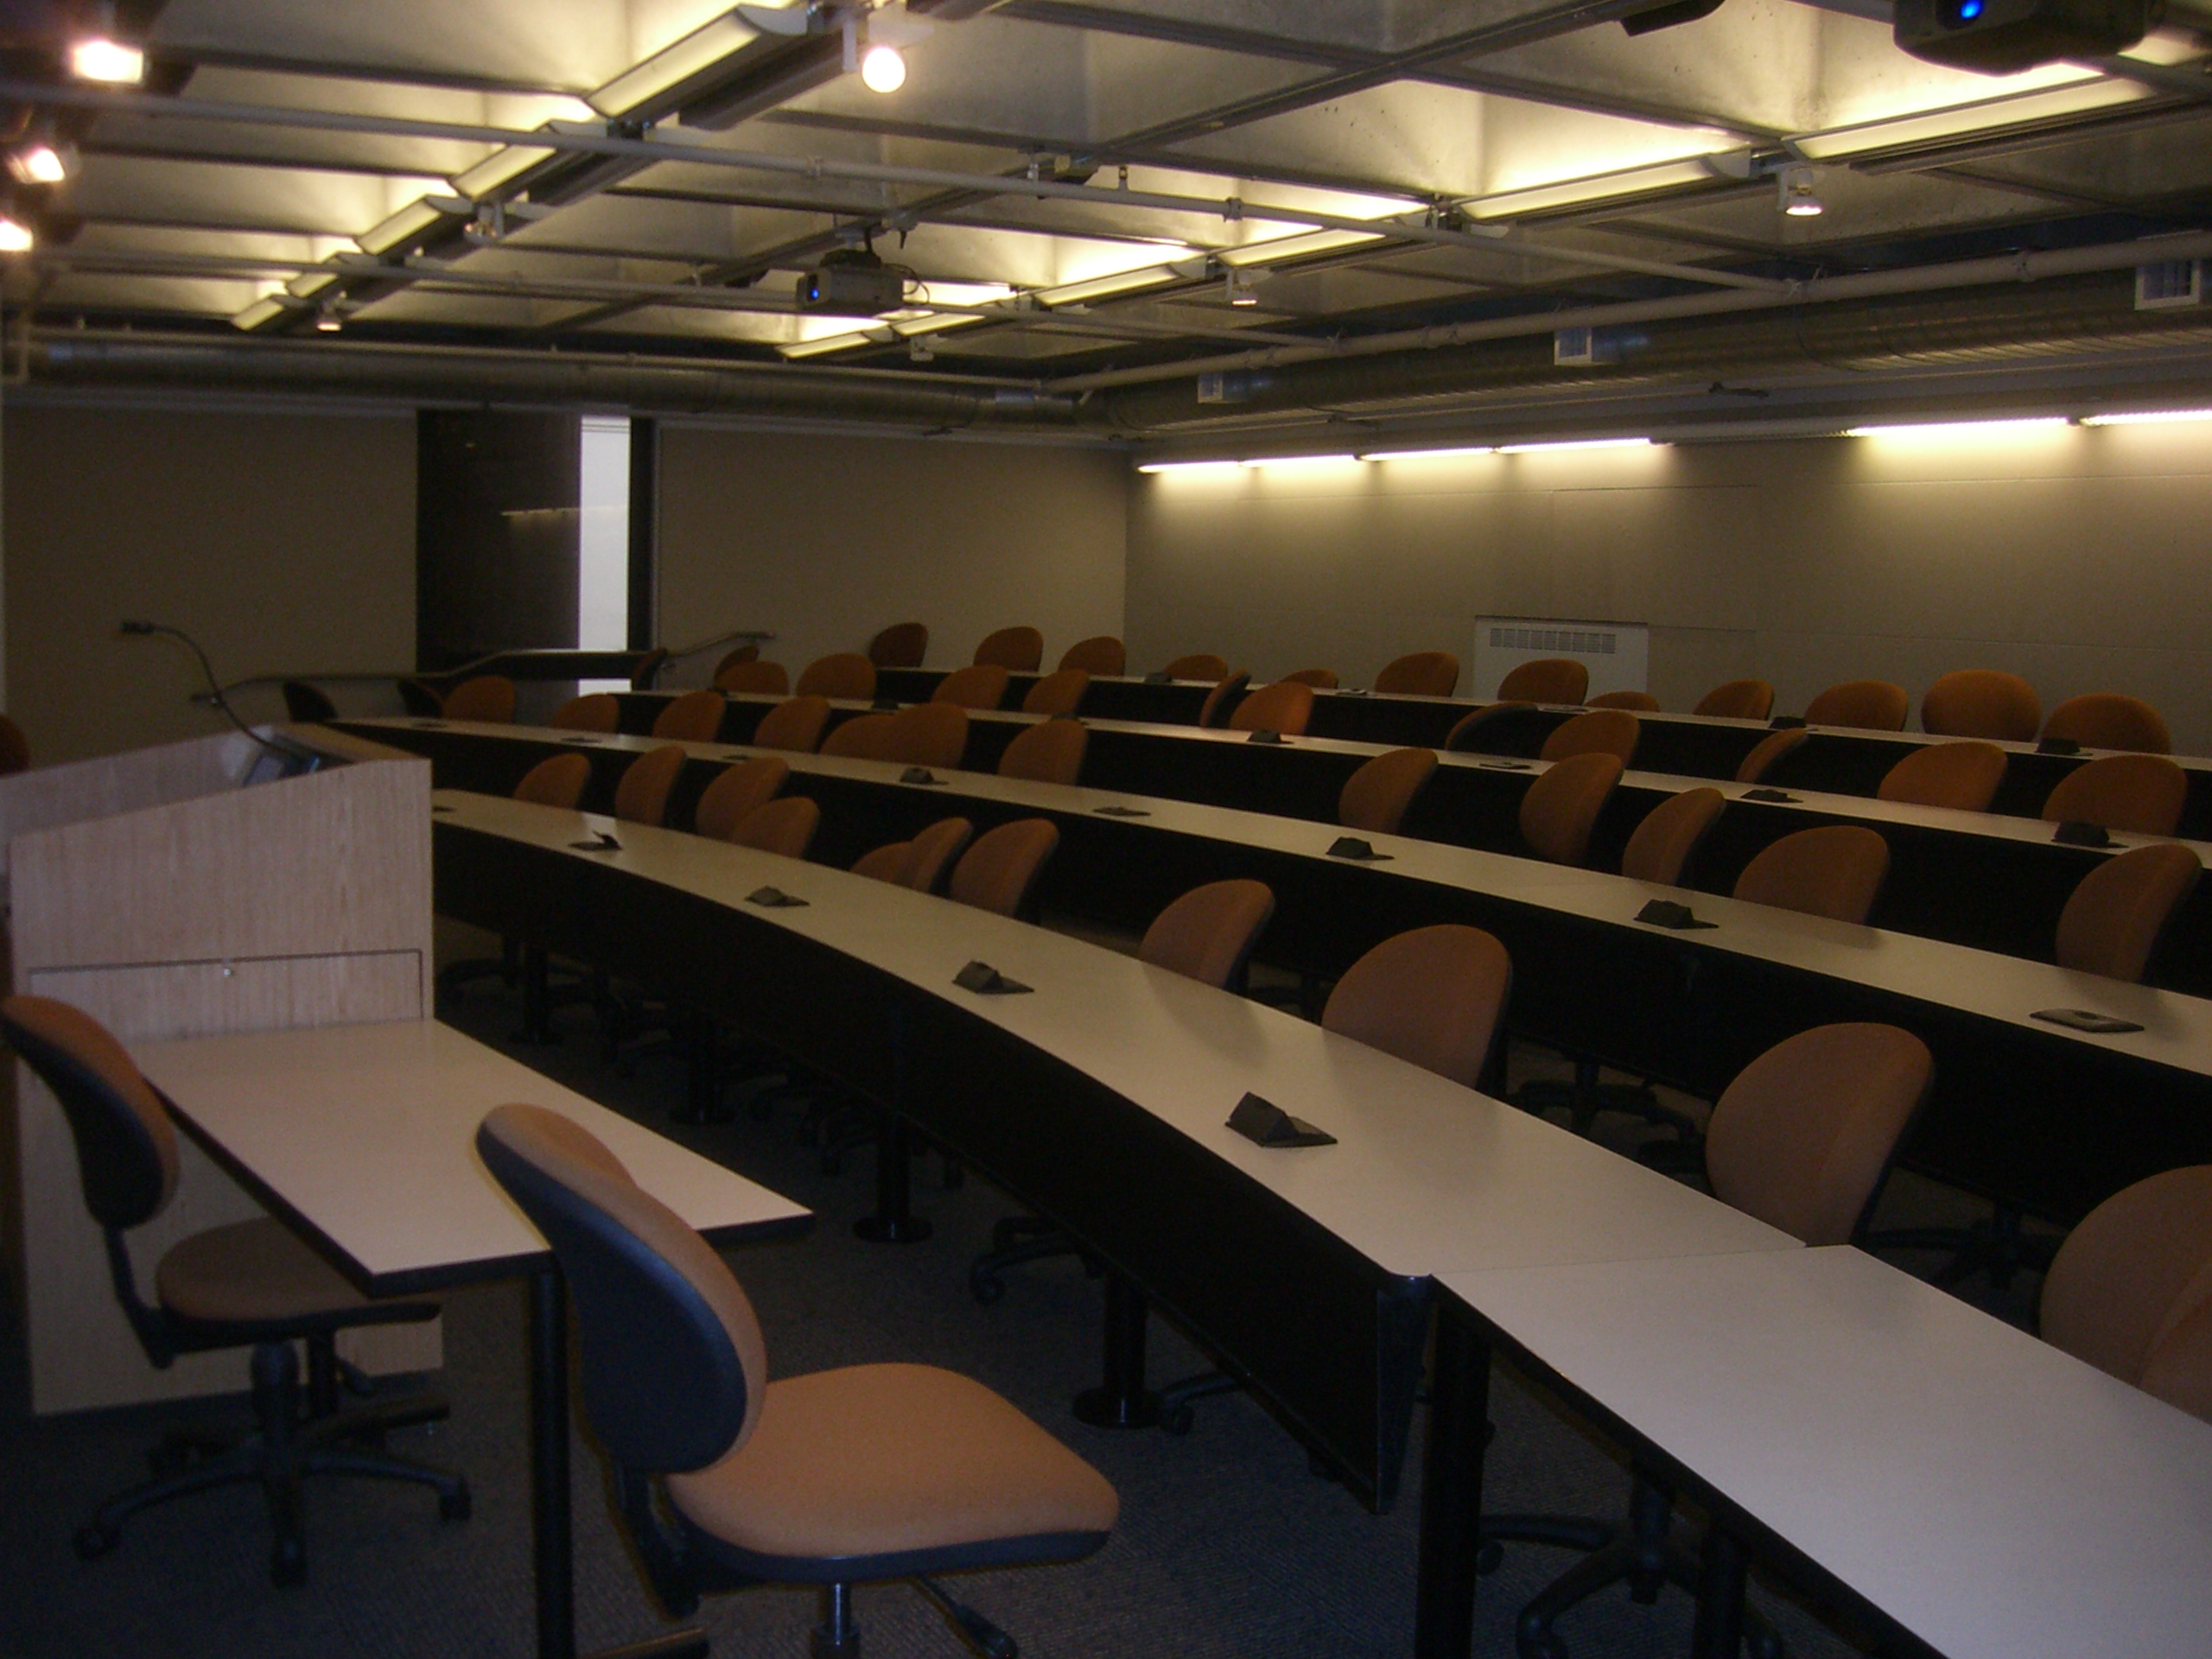 File Lecture Hall Jpg Wikimedia Commons